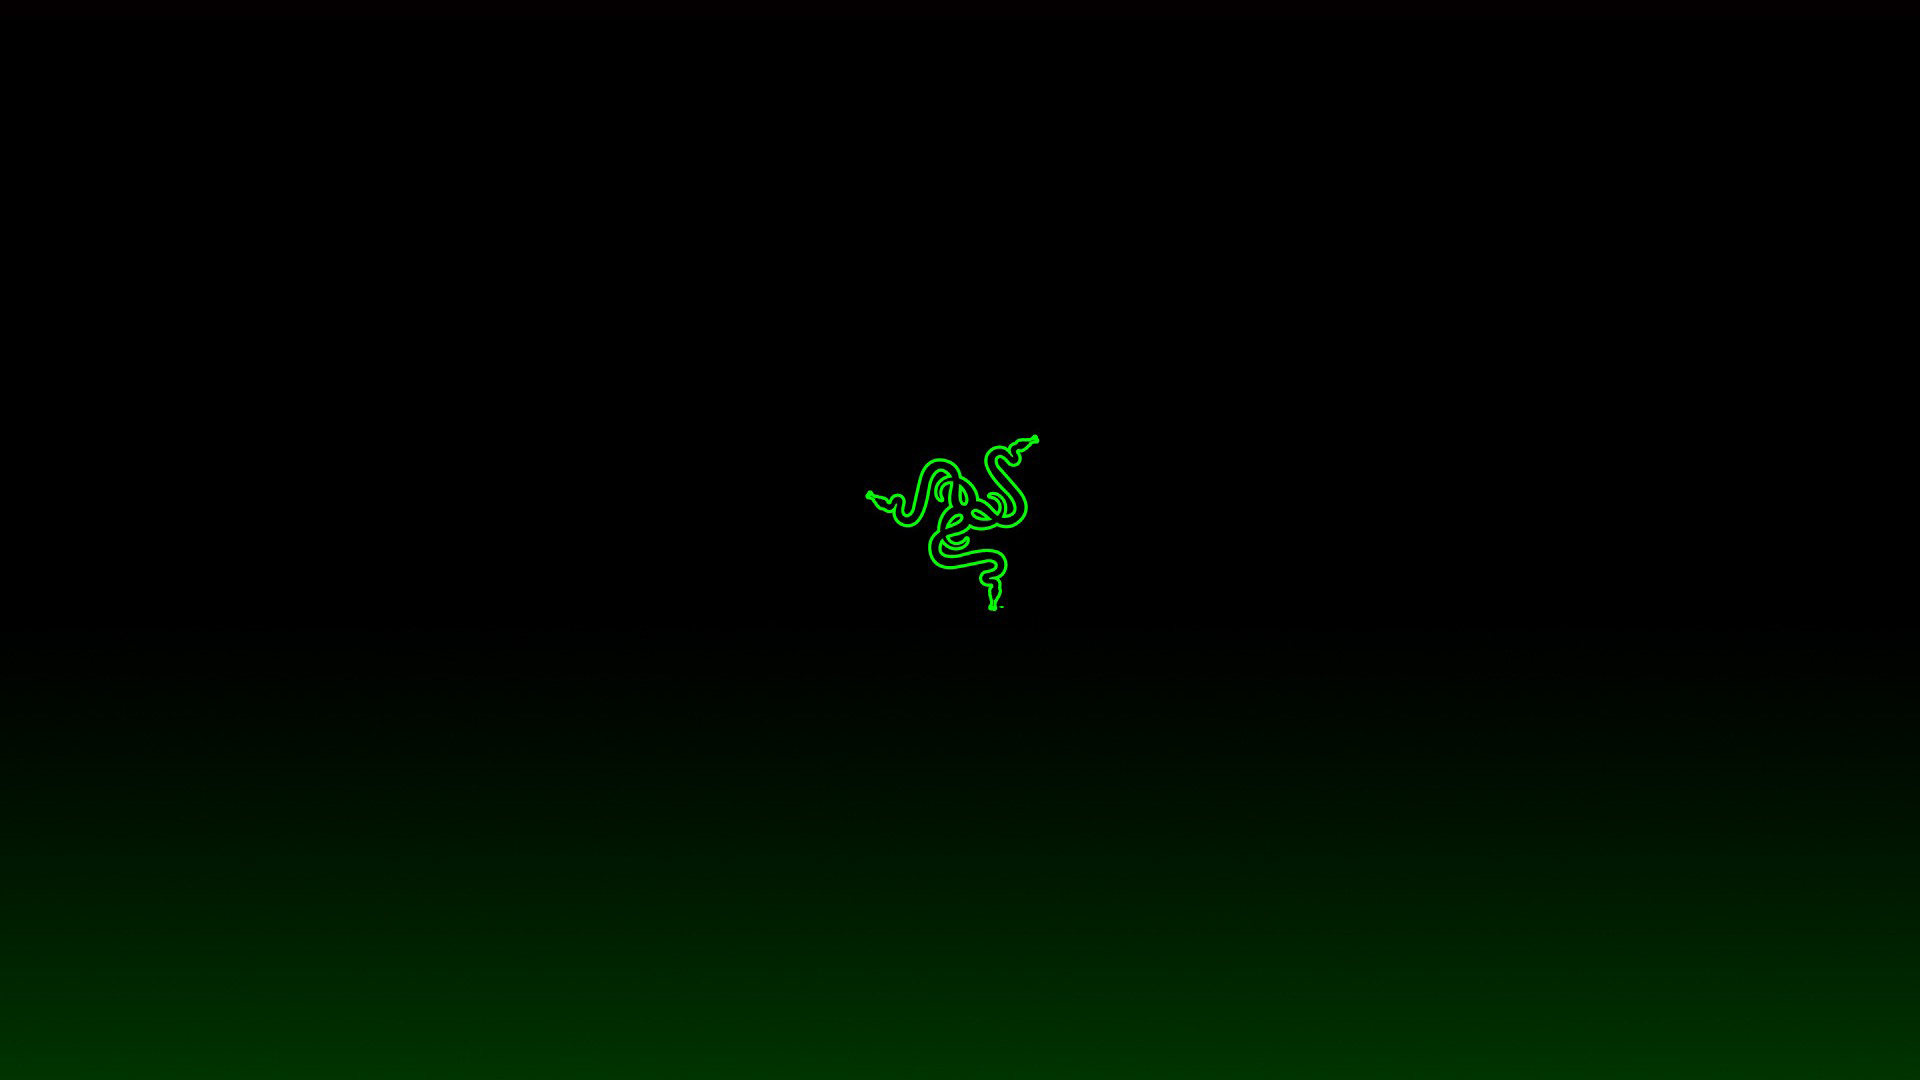 Full Hd Razer Green Wallpaper